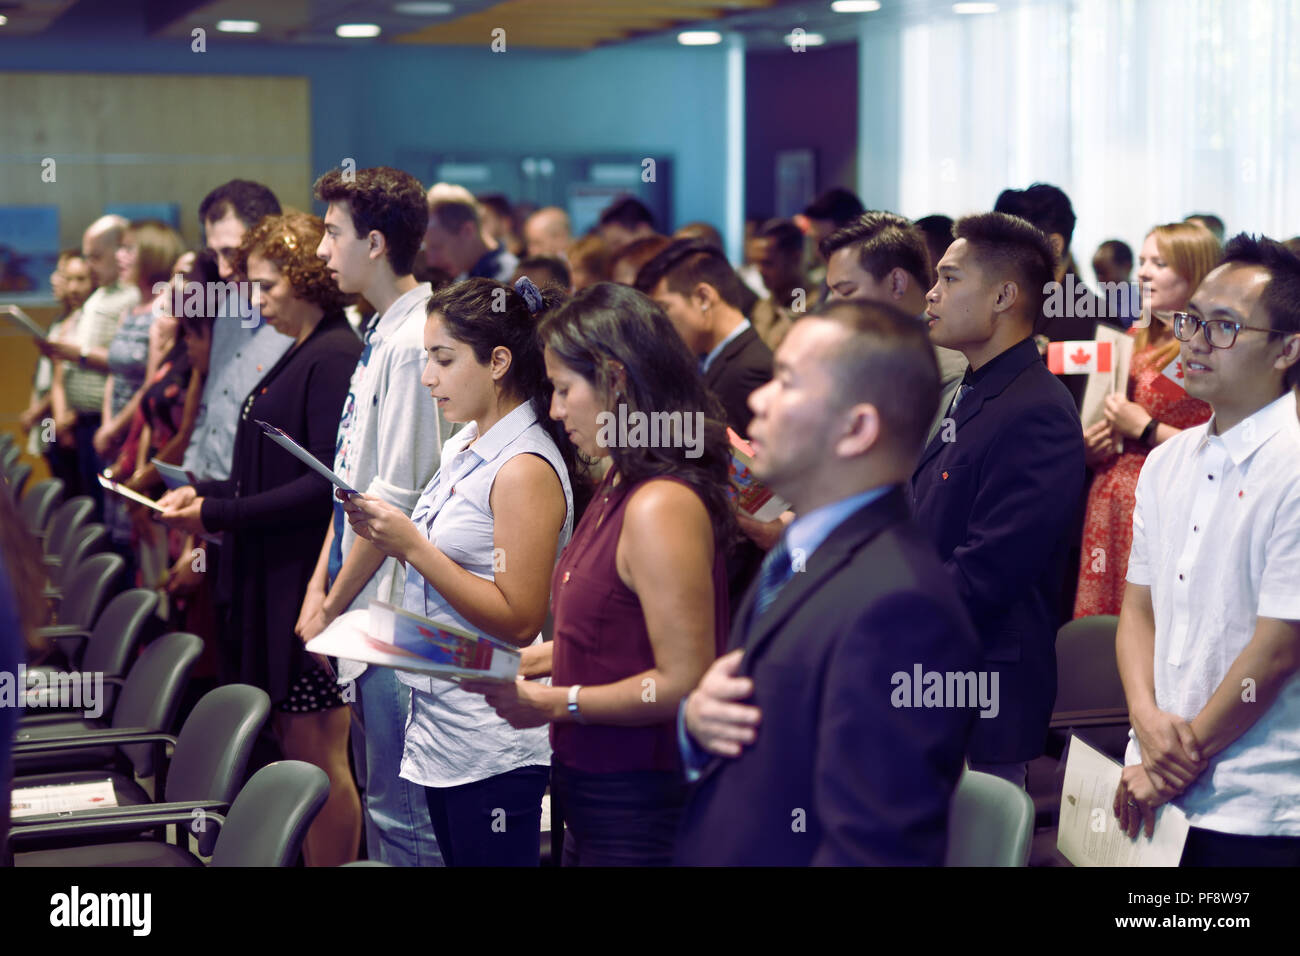 Citizenship Stock Photos & Citizenship Stock Images - Alamy